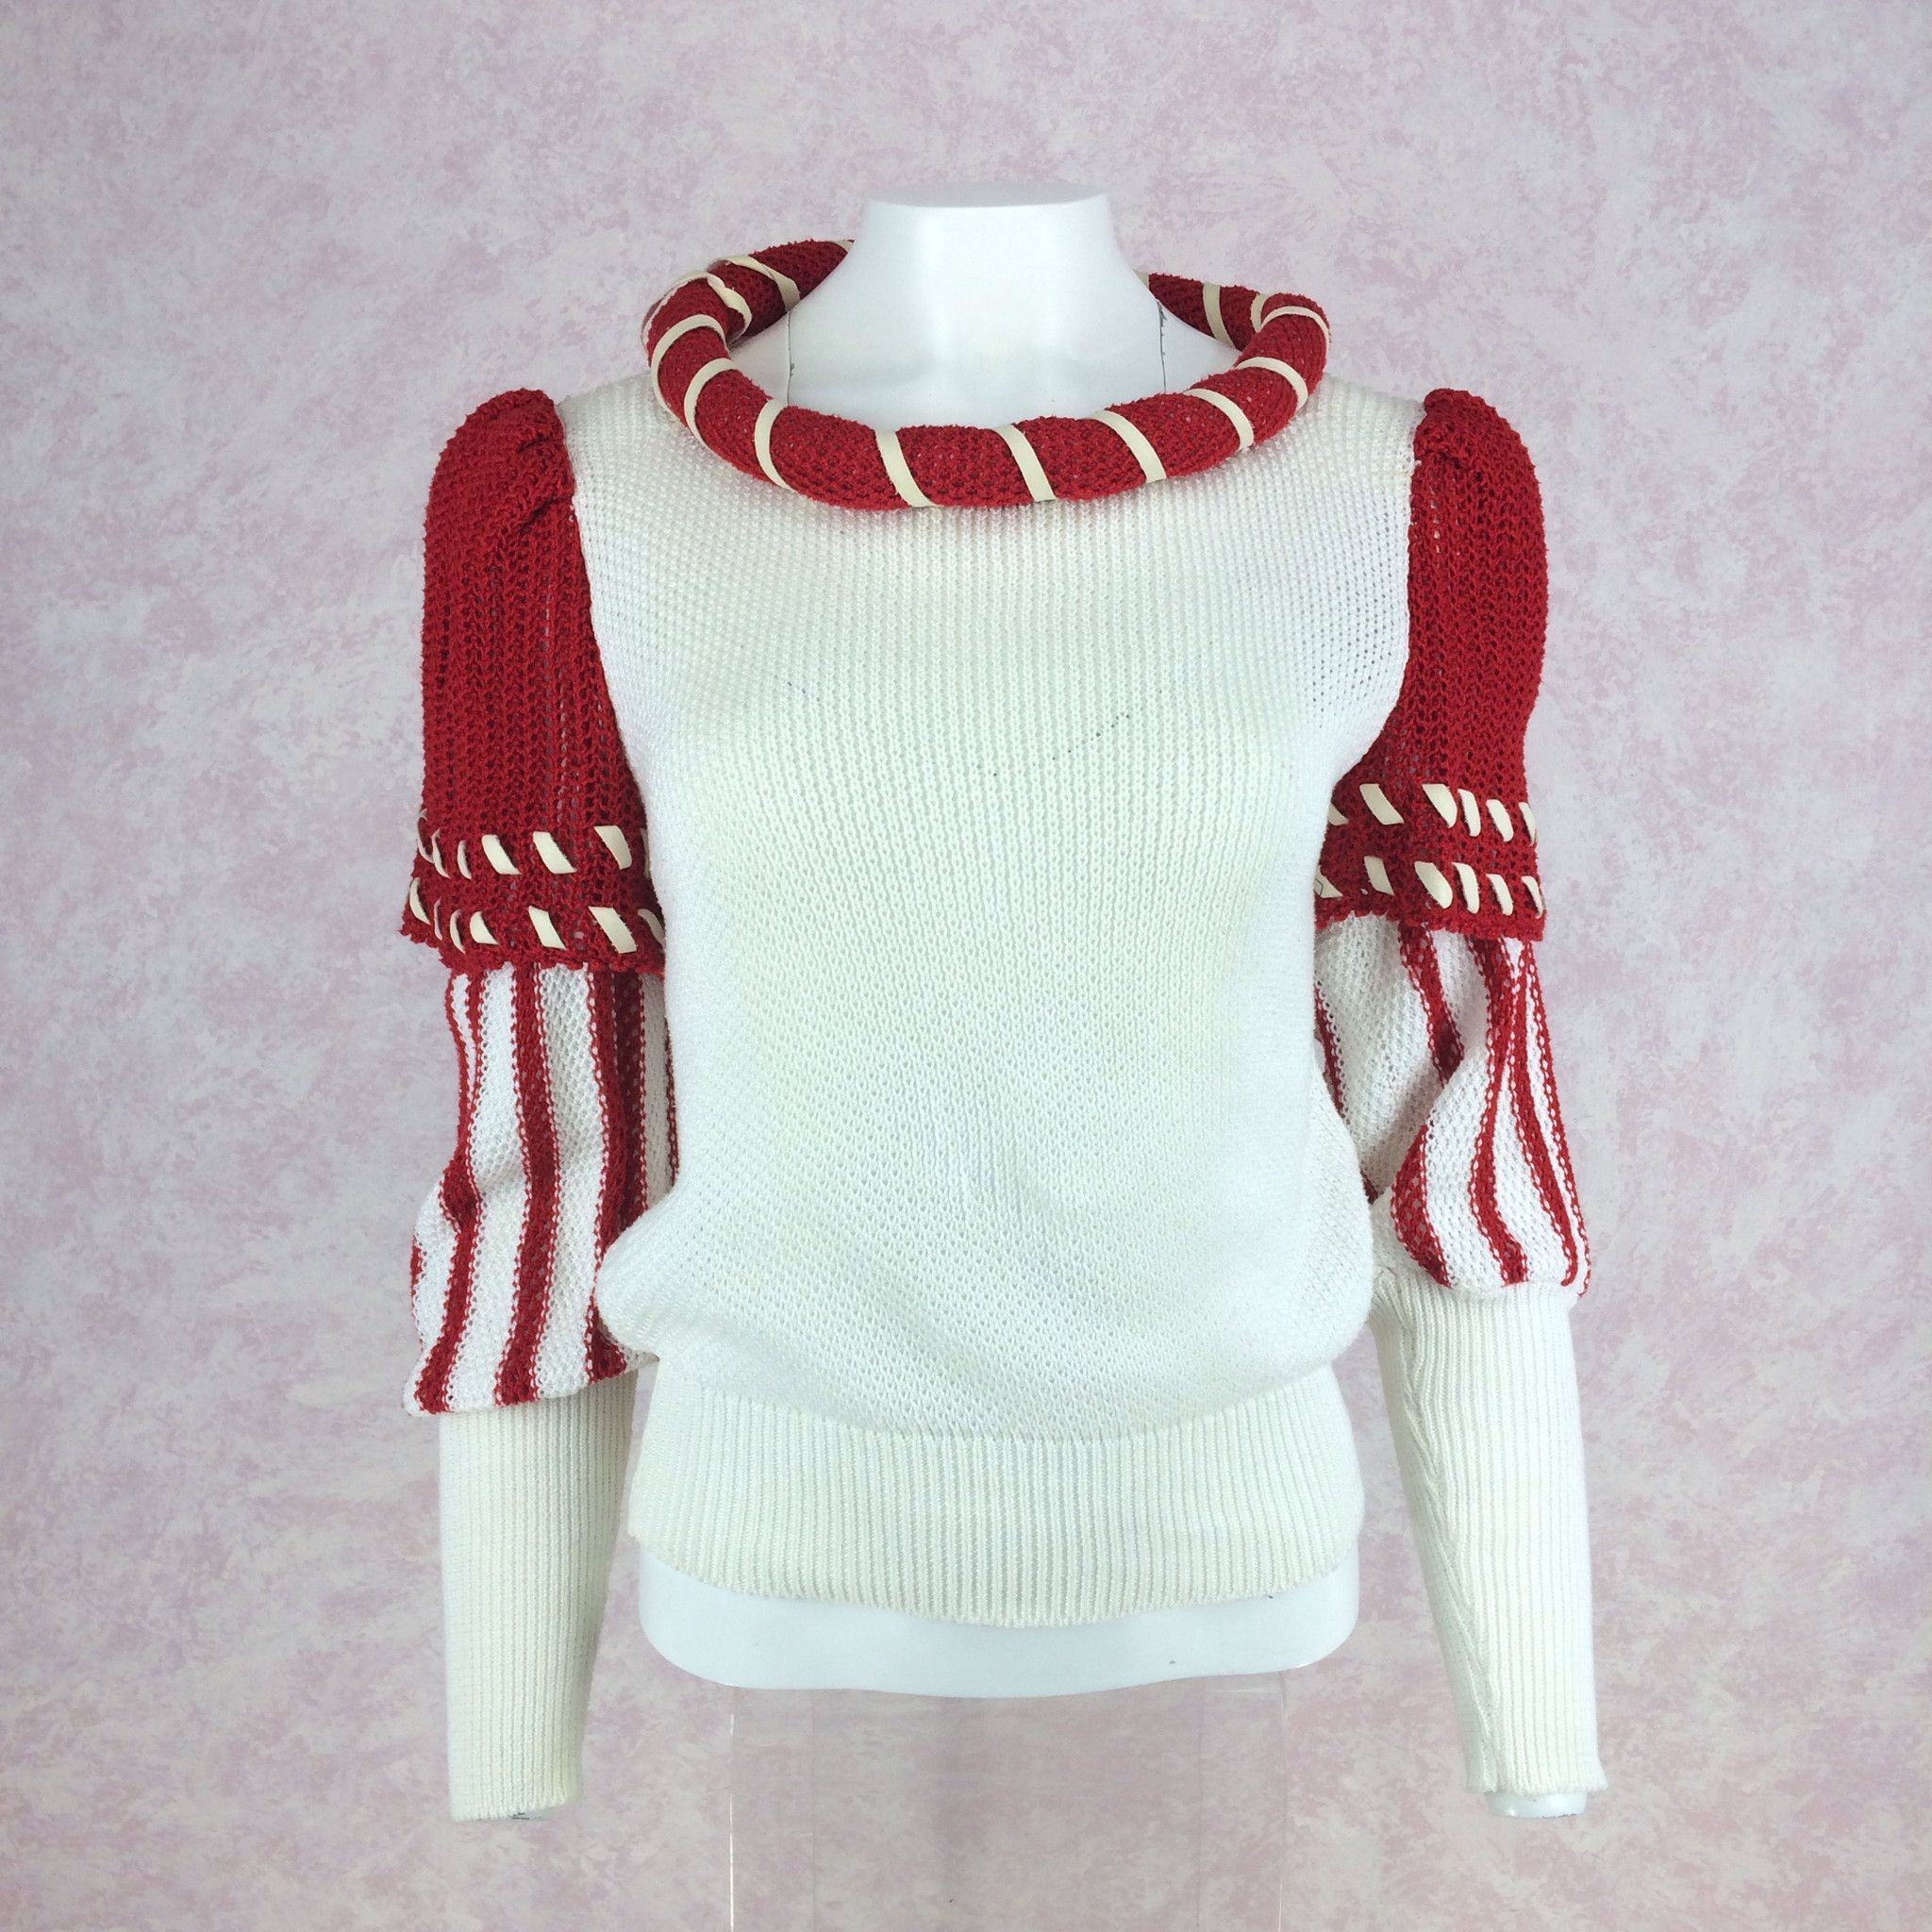 Vintage 80s Red & White Color Blocked Knit Pullover, NOS